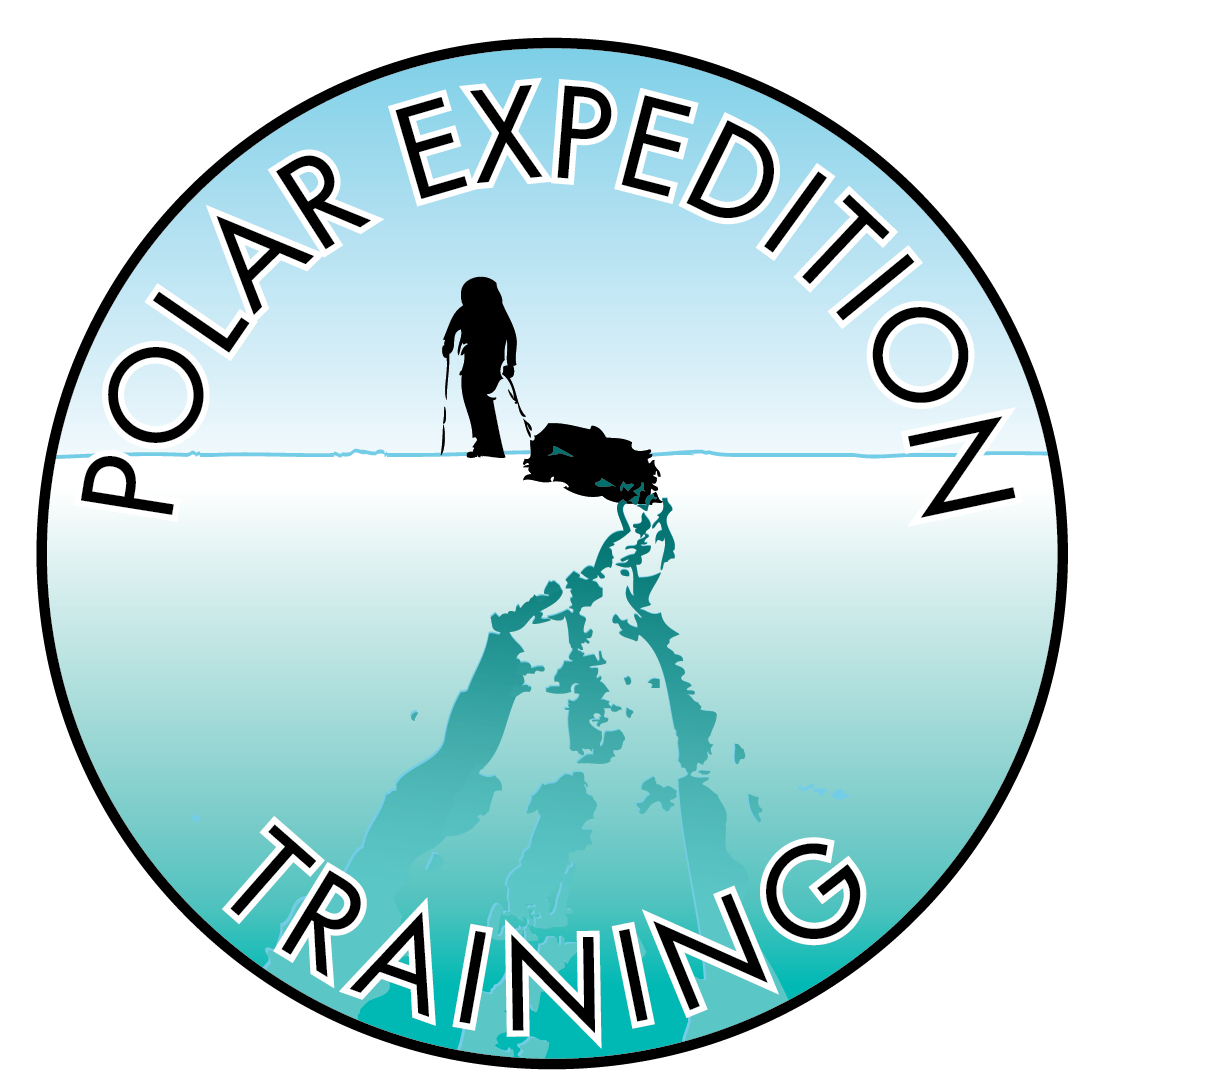 Polar Expedition Training - Hannah McKeand is the founder of Polar Expedition Training, one of the world's leading providers of training and expedition consultation for anyone wishing to undertake a polar style adventure. Run out of the remote mountain village of Finse at the heart of the spectacular Hardangervidda plateau in Norway, the purpose of our classic two-week Polar Training Courses is to prepare individuals for participation in a polar expedition such as skiing long distance or last degree to the South or North Pole or crossing the Greenland Icecap. They are also a grand adventure in their own right!Full details available on the company website: www.polarexpeditiontraining.com